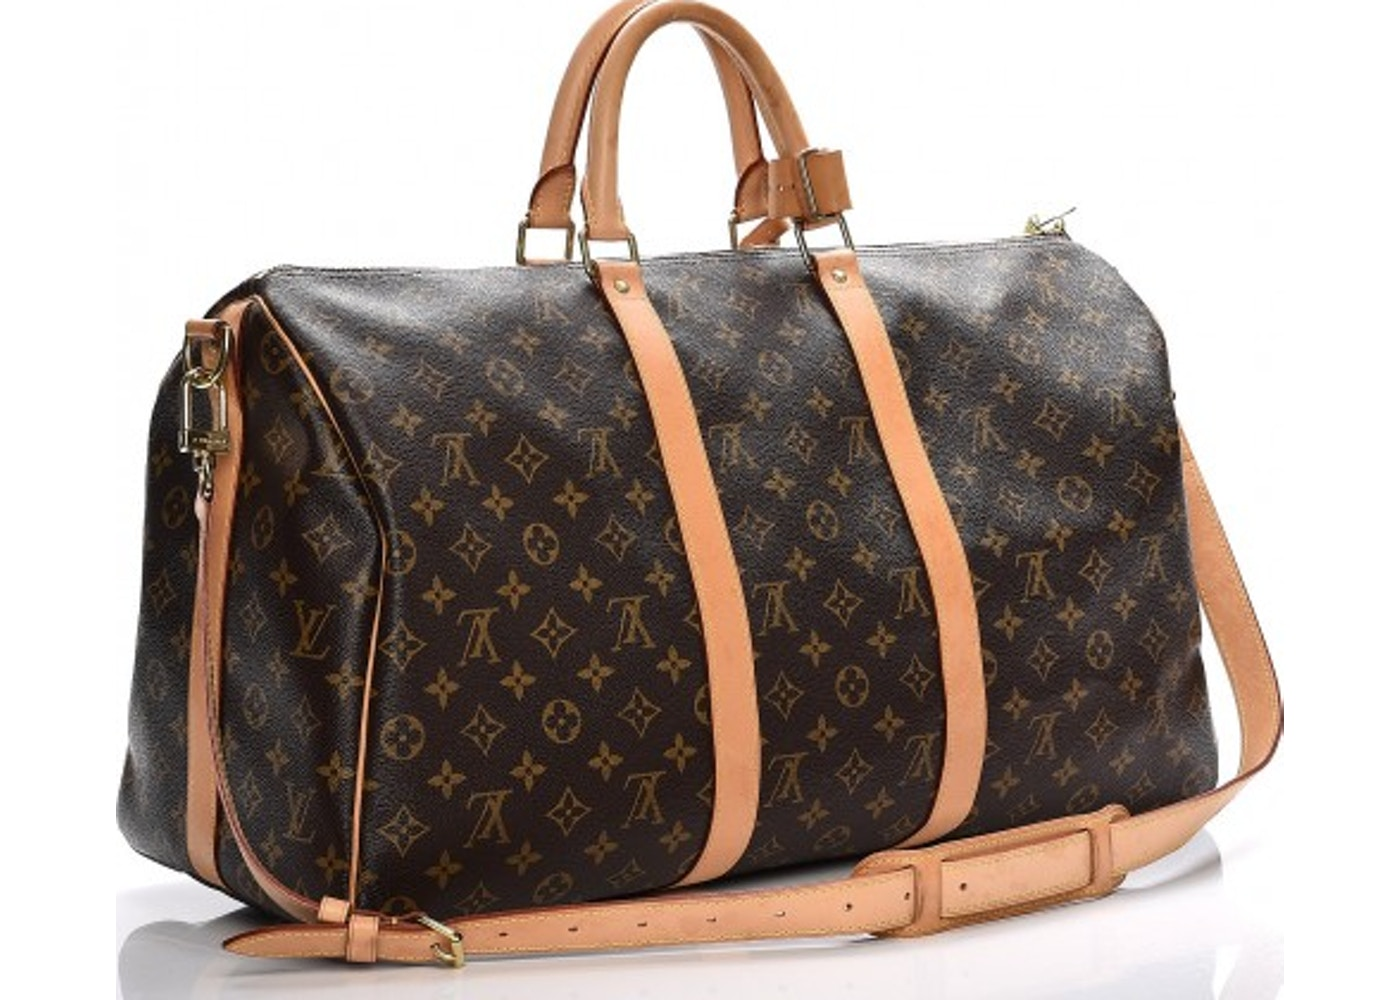 e5daa5ccd752c Louis Vuitton Keepall Bandouliere Monogram 50 Brown